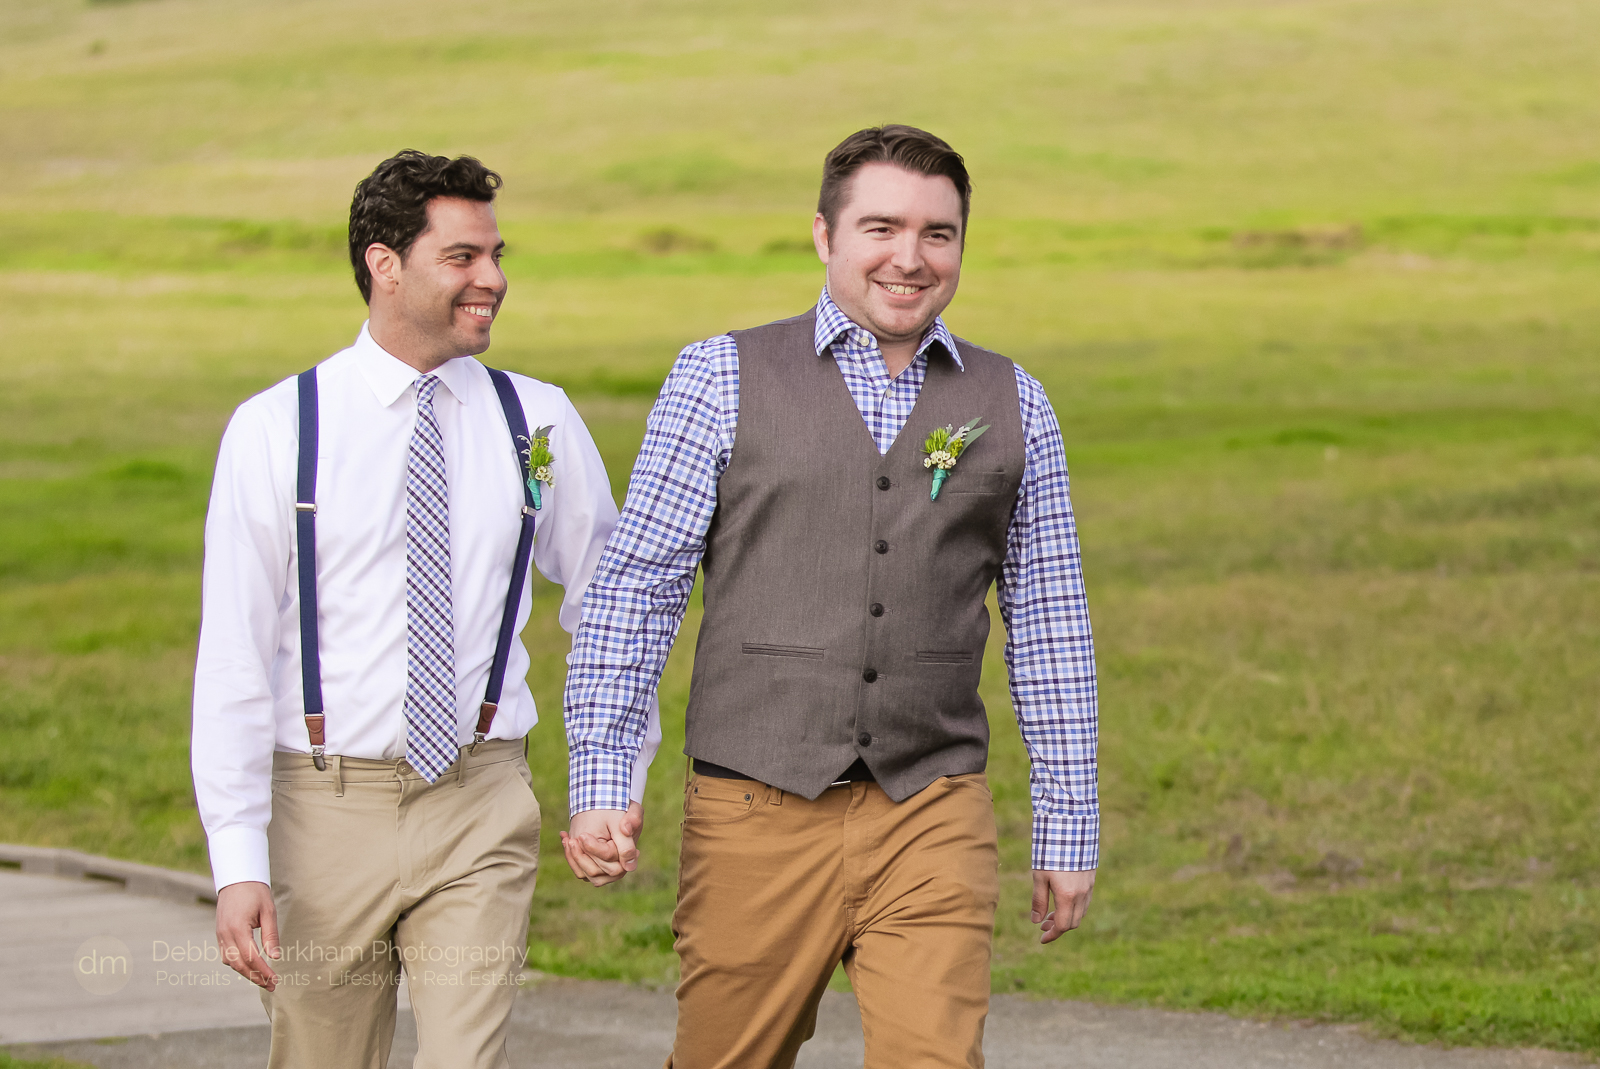 A+R_Gay Wedding_Portraits_Married_Cambria_Robin's_California_Coast__Photographer-47